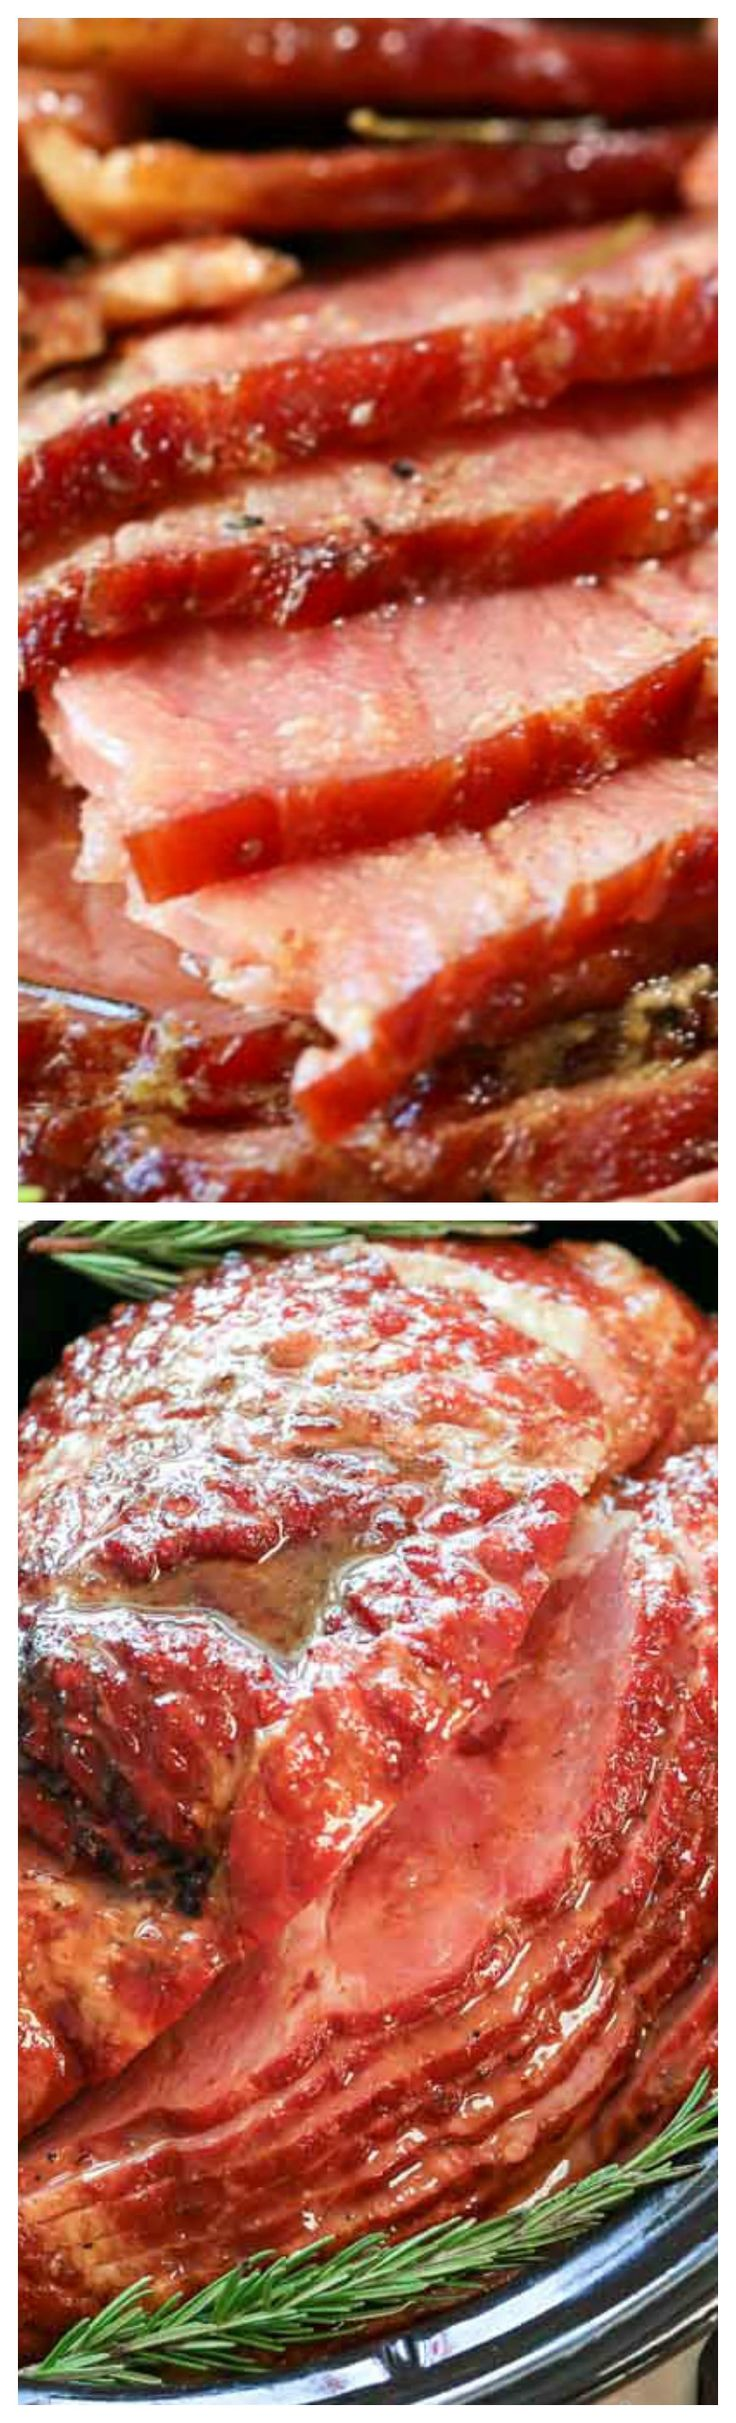 Easy Crock Pot Ham ~ The perfect holiday ham recipe... The result is a tender and juicy crock pot ham that your family will absolutely love!